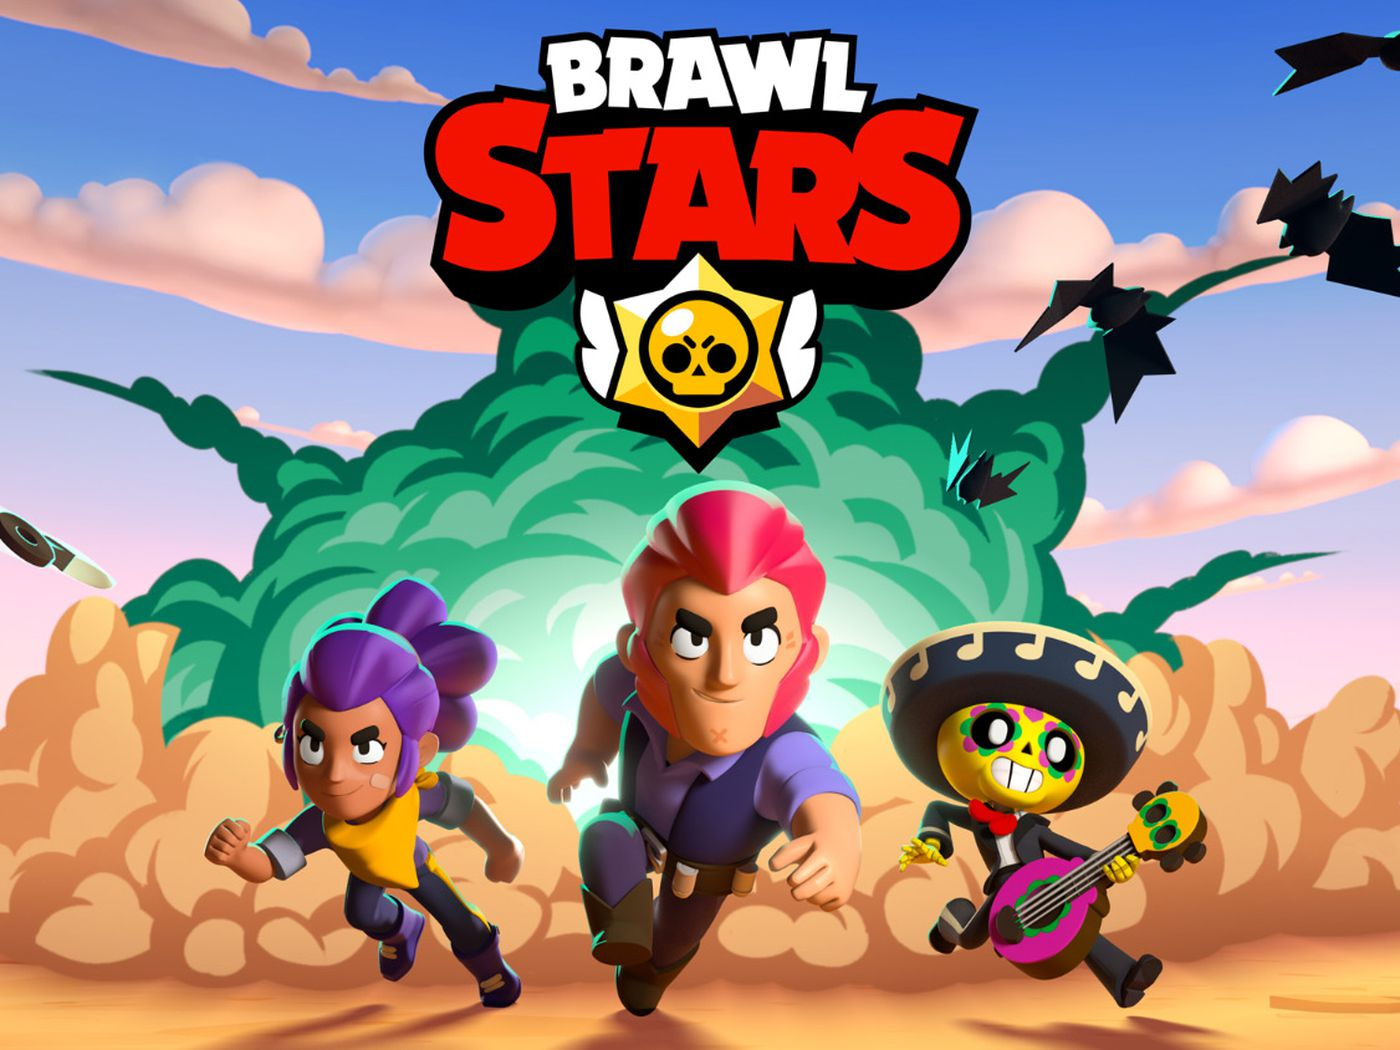 Brawl Stars Review A Great Fit For Mobile If A Little Too Simple